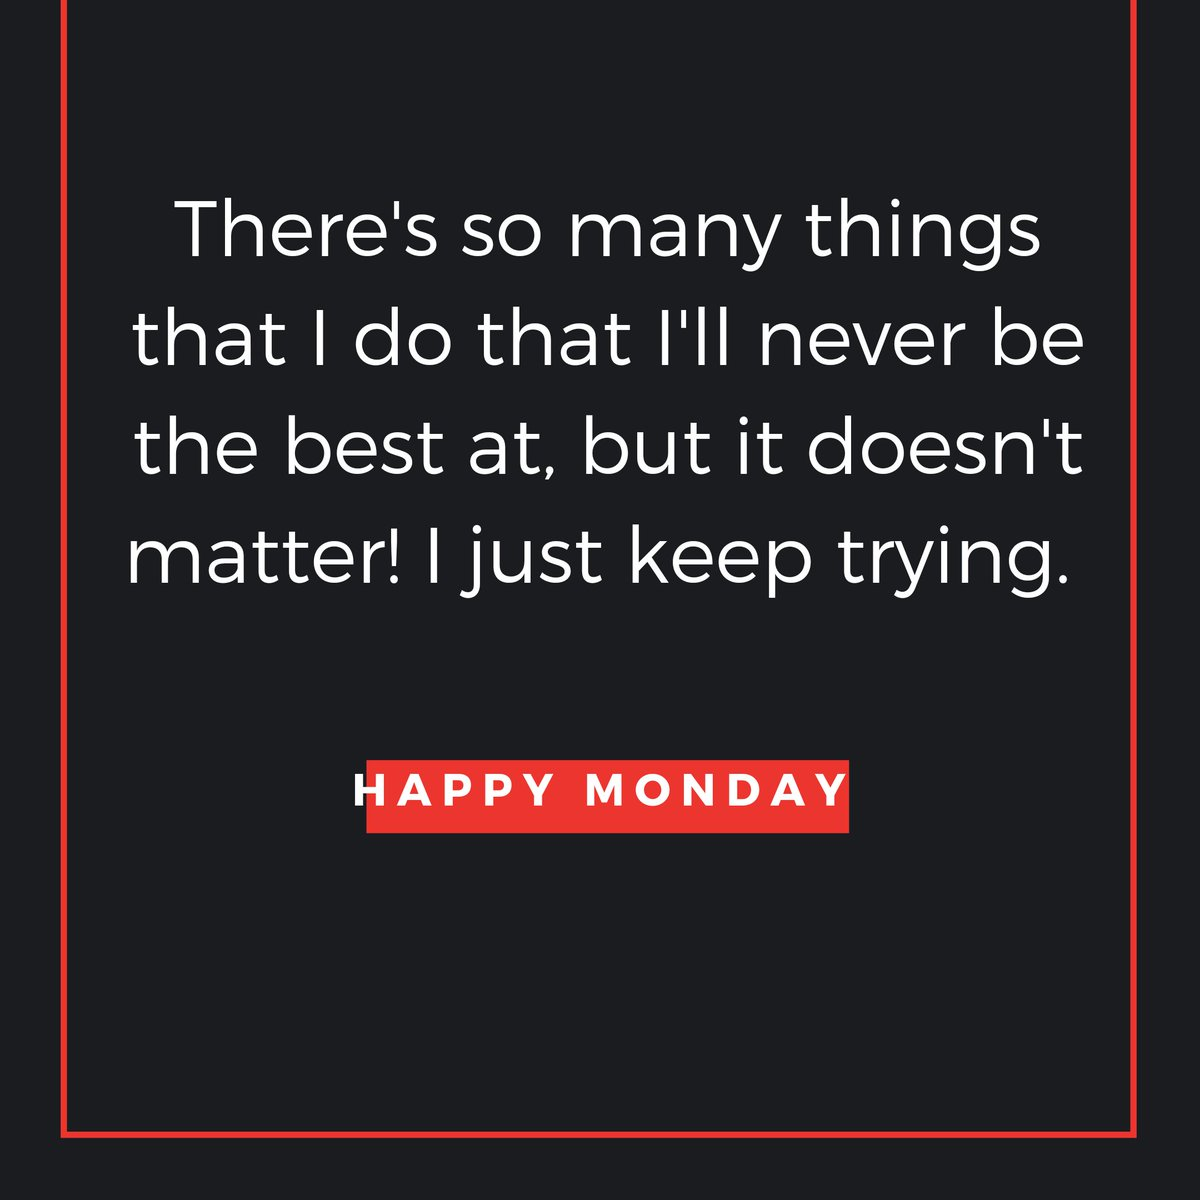 I was thinking about all the stuff that I attempt to do. I decided to make this card and share with everyone. Don't let the fear of imperfection stop you from trying. #MondayMotivation #MotivationMonday #MotivationalMonday